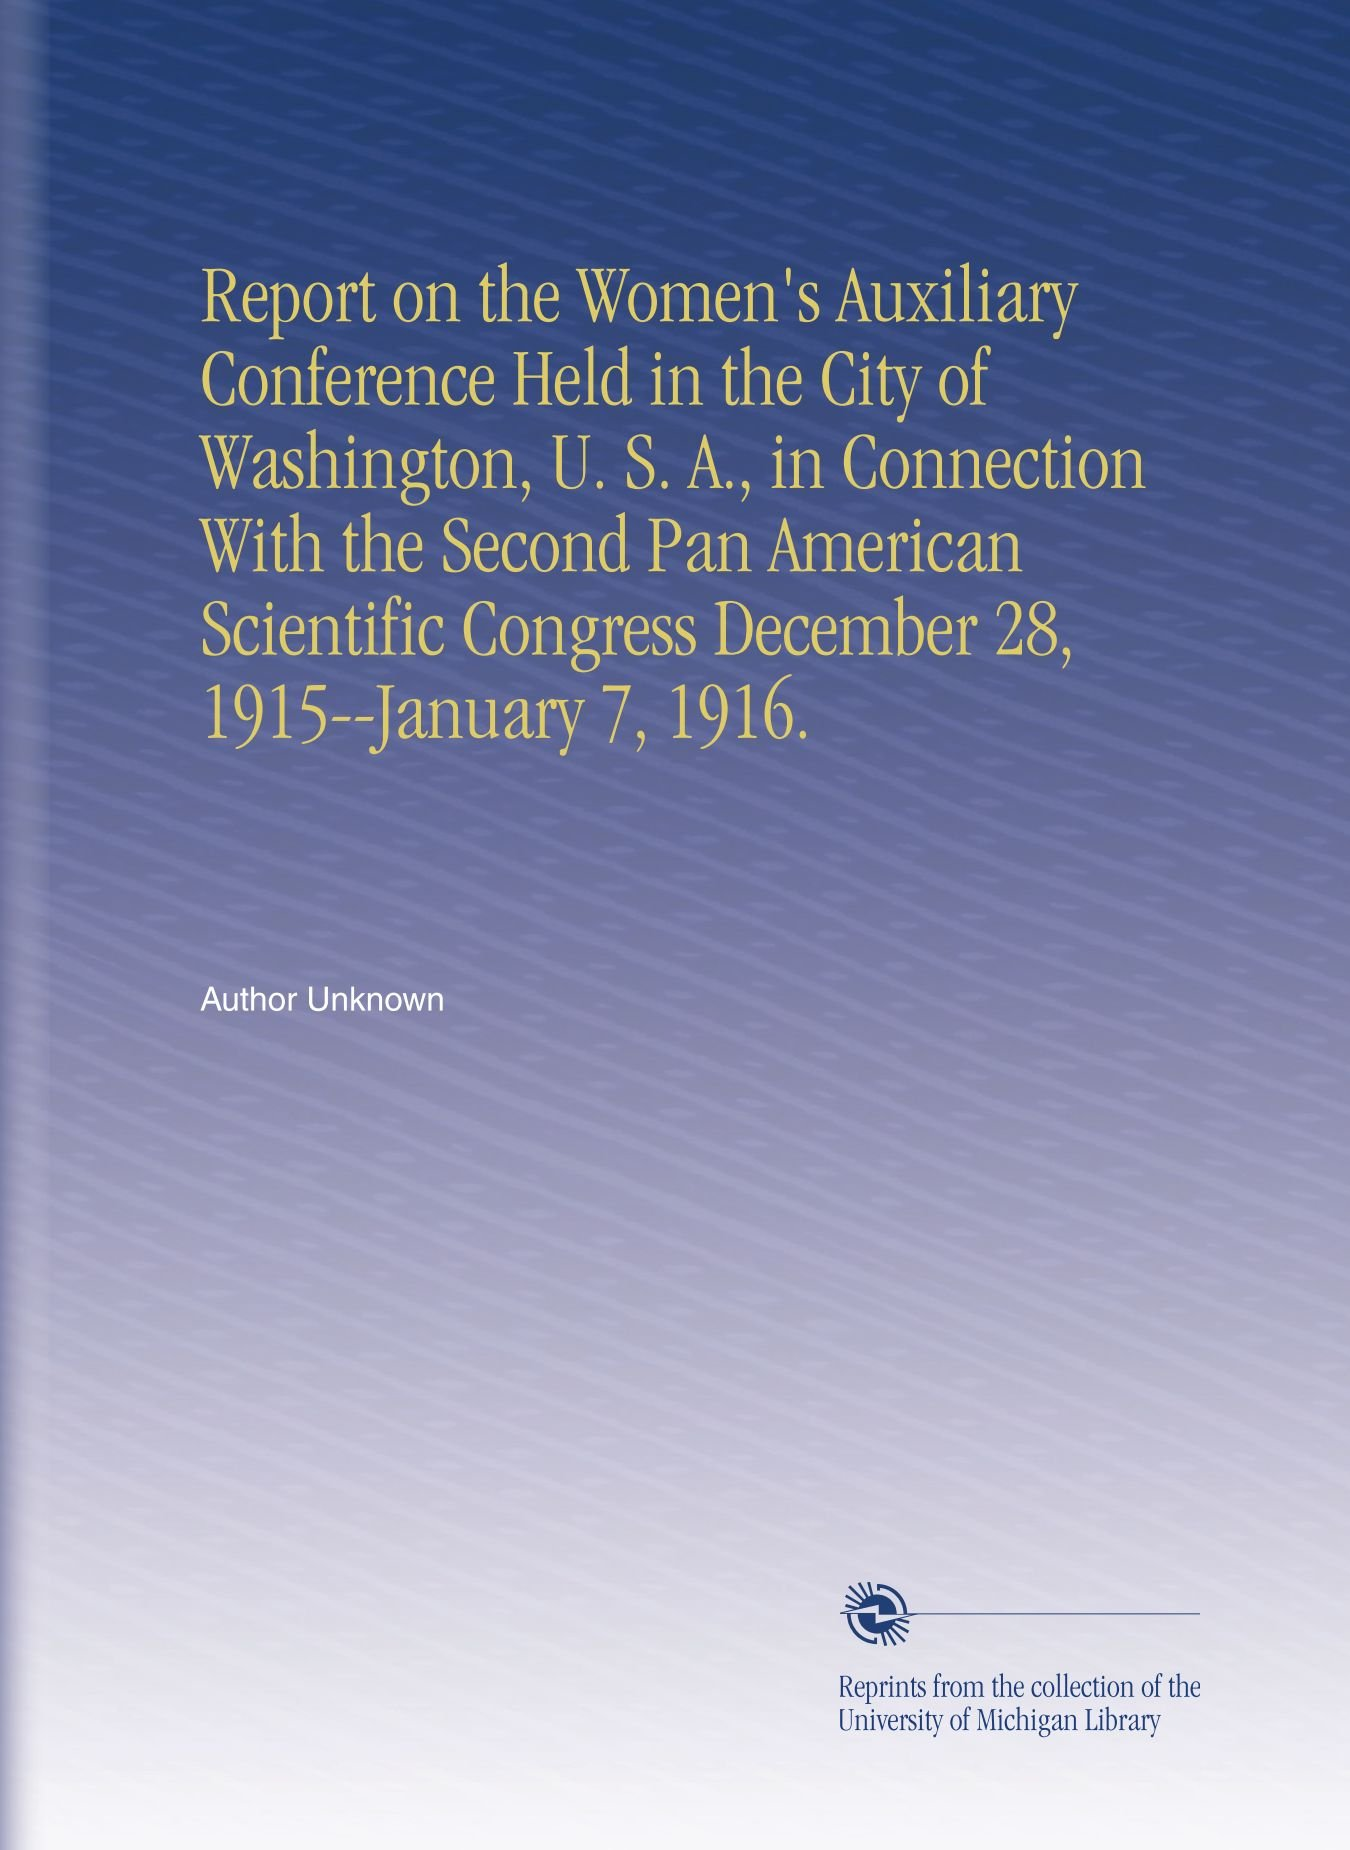 Read Online Report on the Women's Auxiliary Conference Held in the City of Washington, U. S. A., in Connection With the Second Pan American Scientific Congress December 28, 1915--January 7, 1916. pdf epub